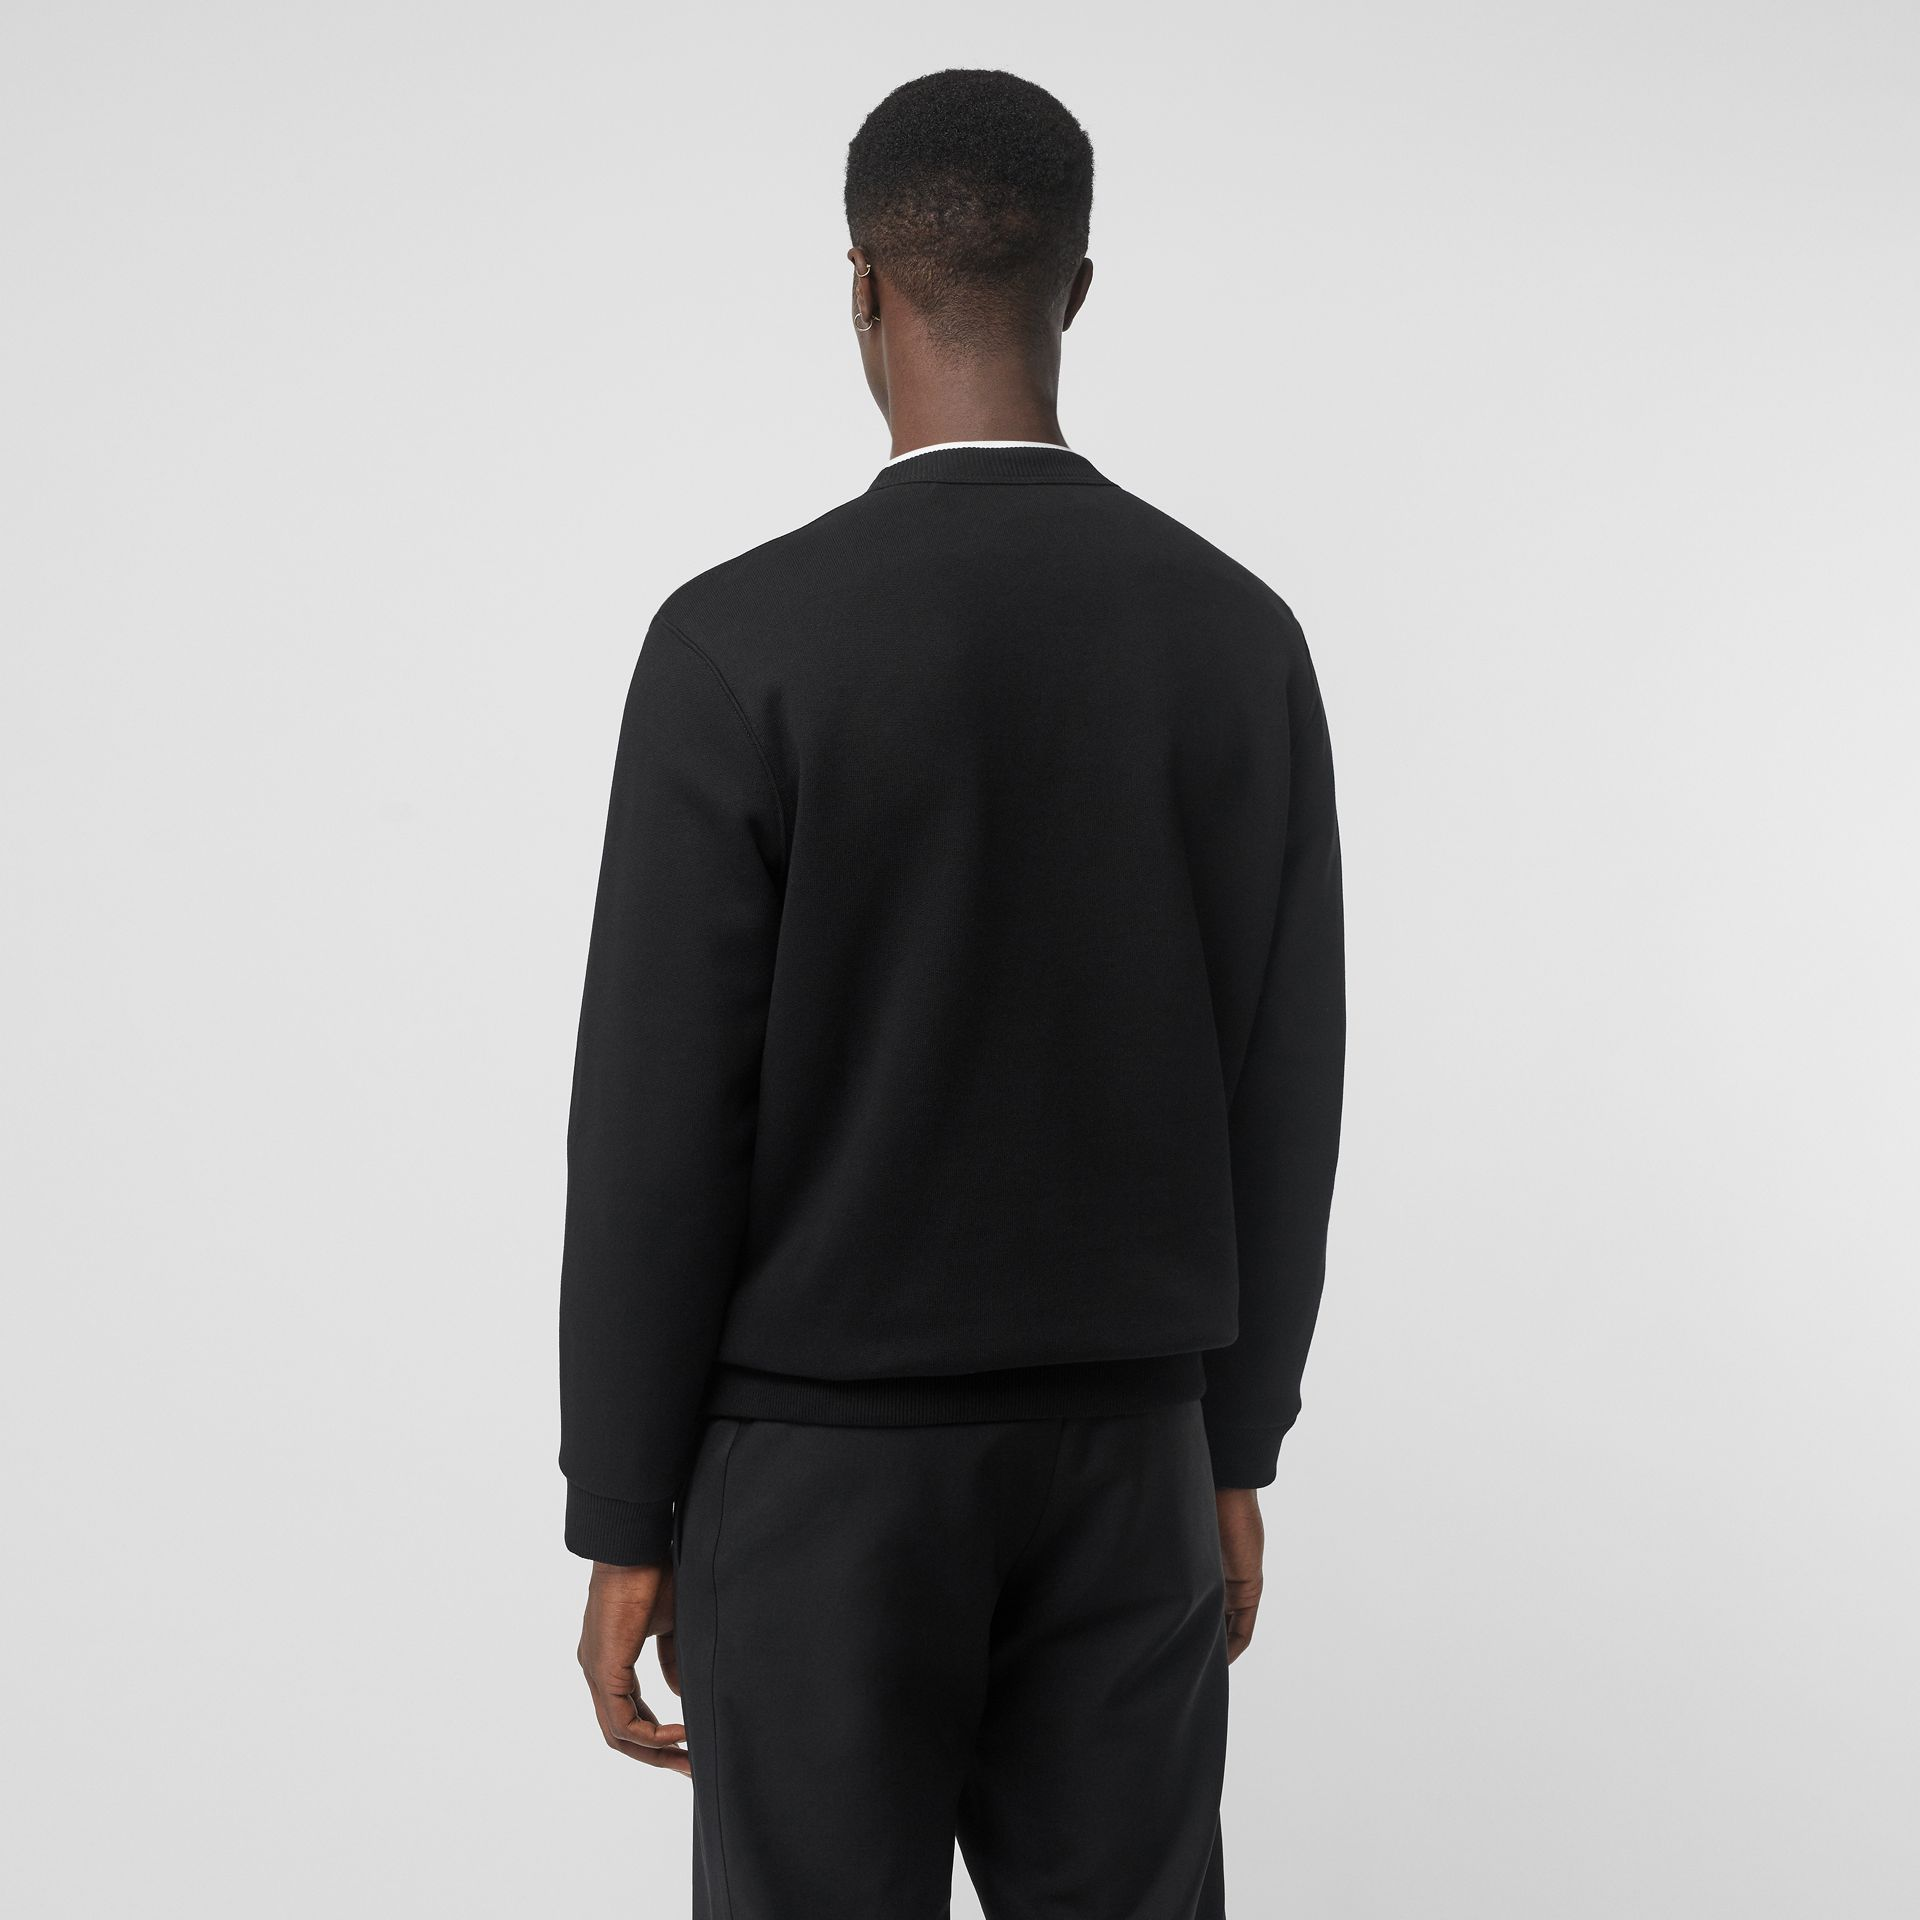 Sweat-shirt avec logo en métal (Noir) - Homme | Burberry - photo de la galerie 1